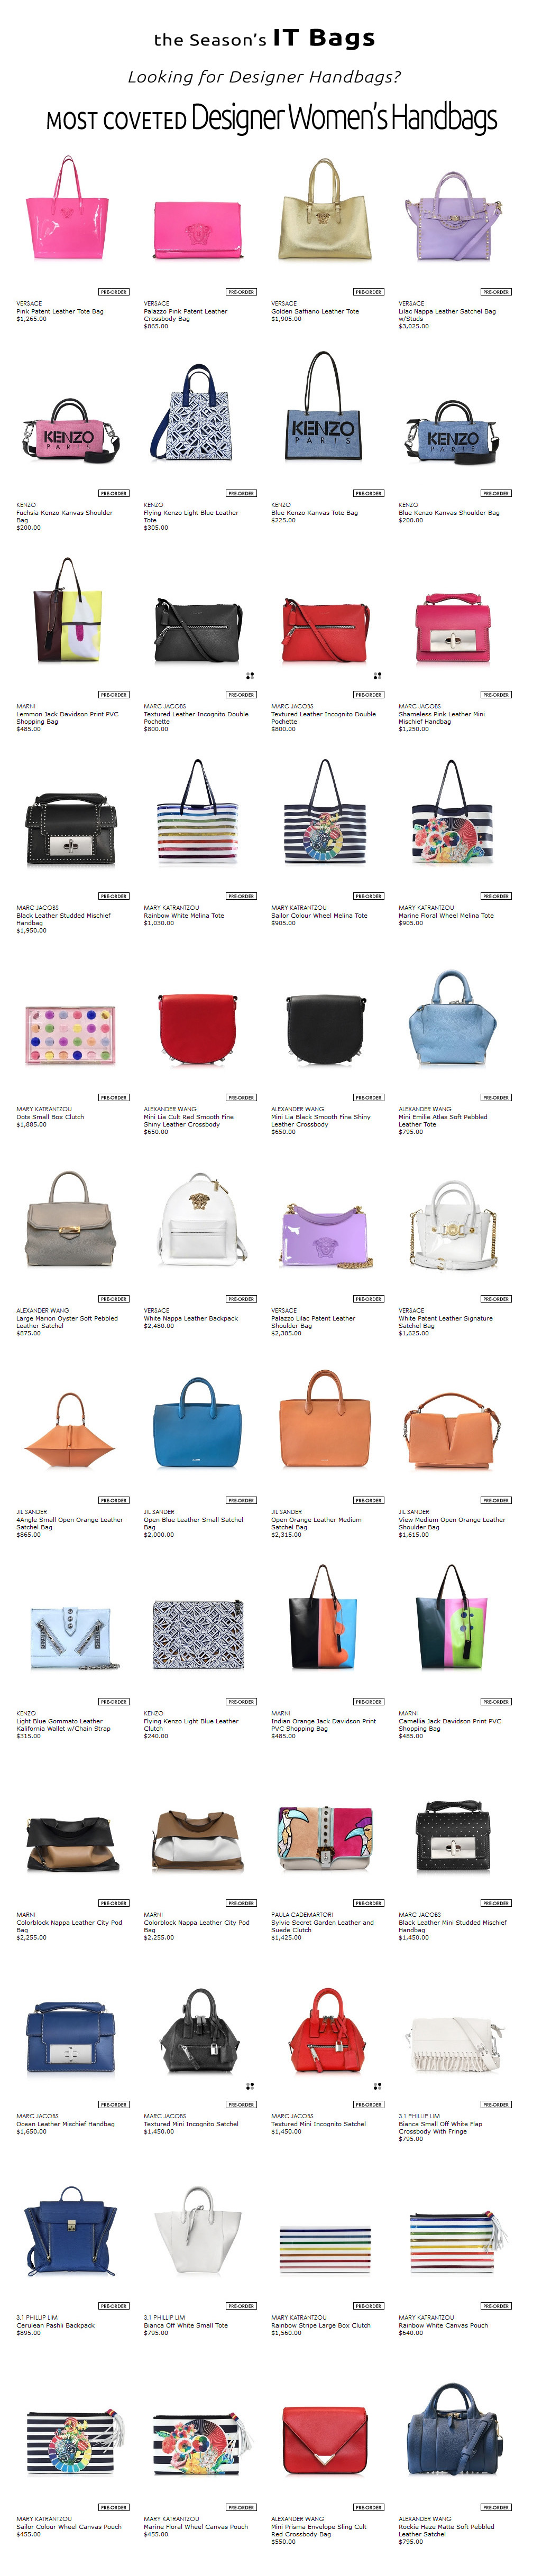 versace marc jacobs valentino roberto cavalli designer bags at Forzieri